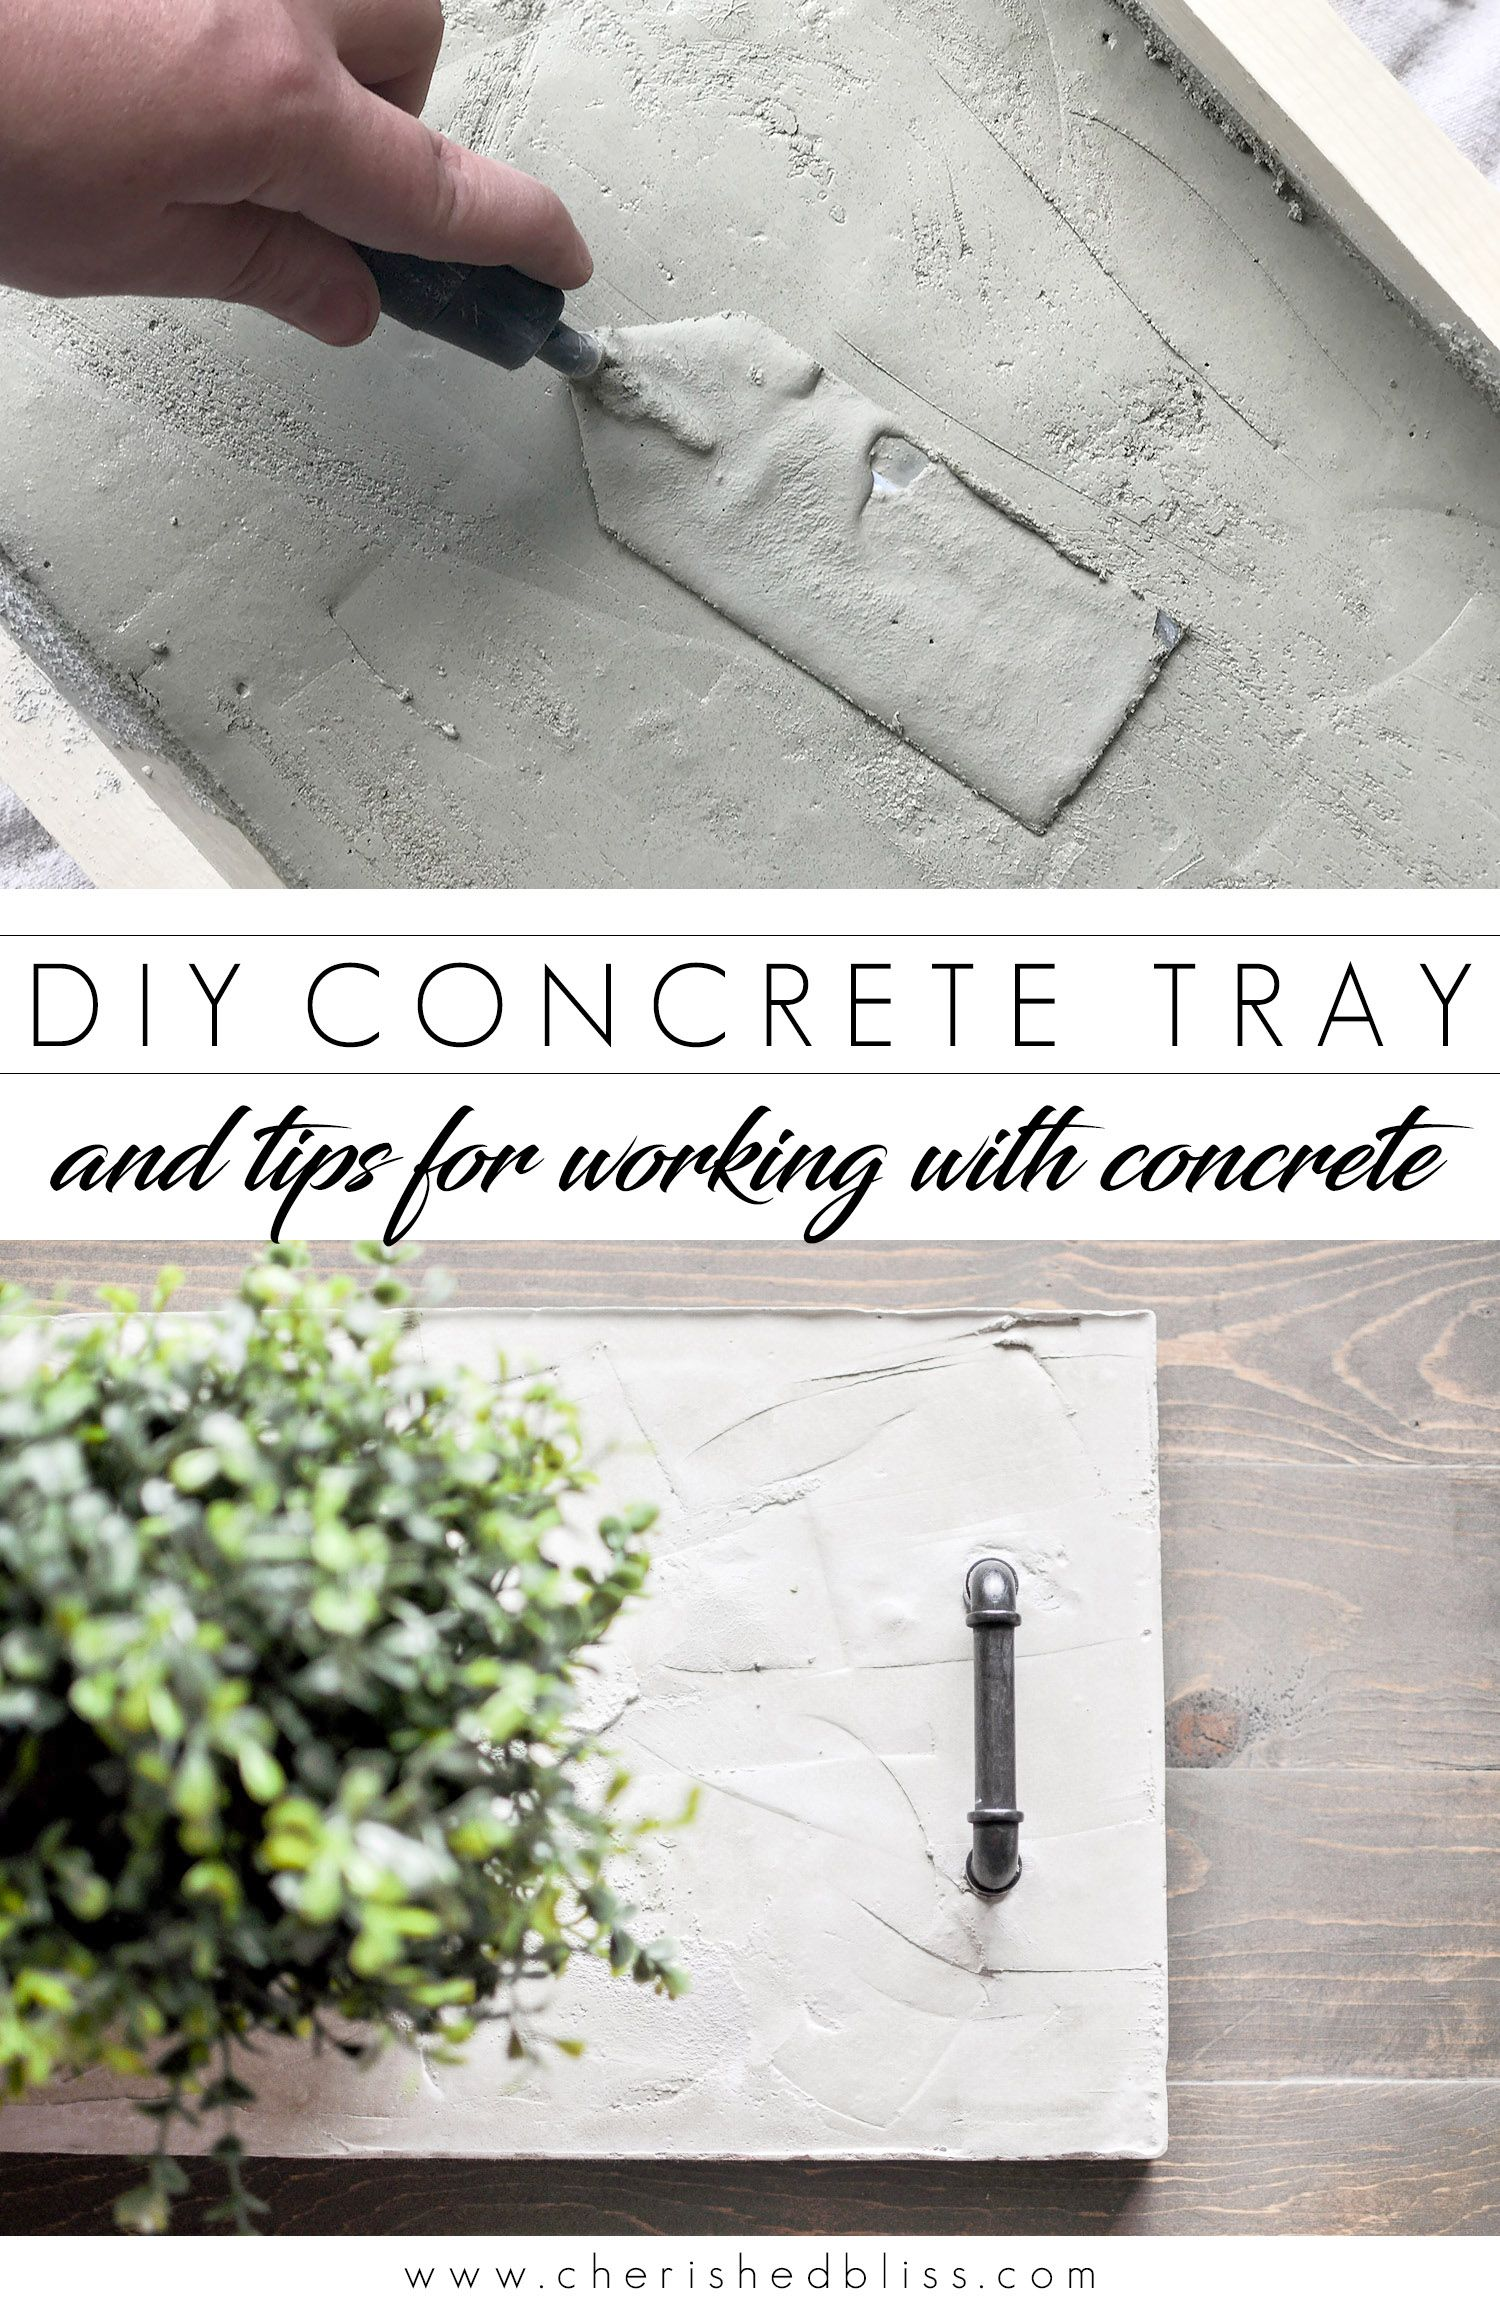 Diy Concrete Tray Centerpiece Tips For Using Concrete Cherished Bliss Concrete Diy Concrete Diy Projects Cement Diy